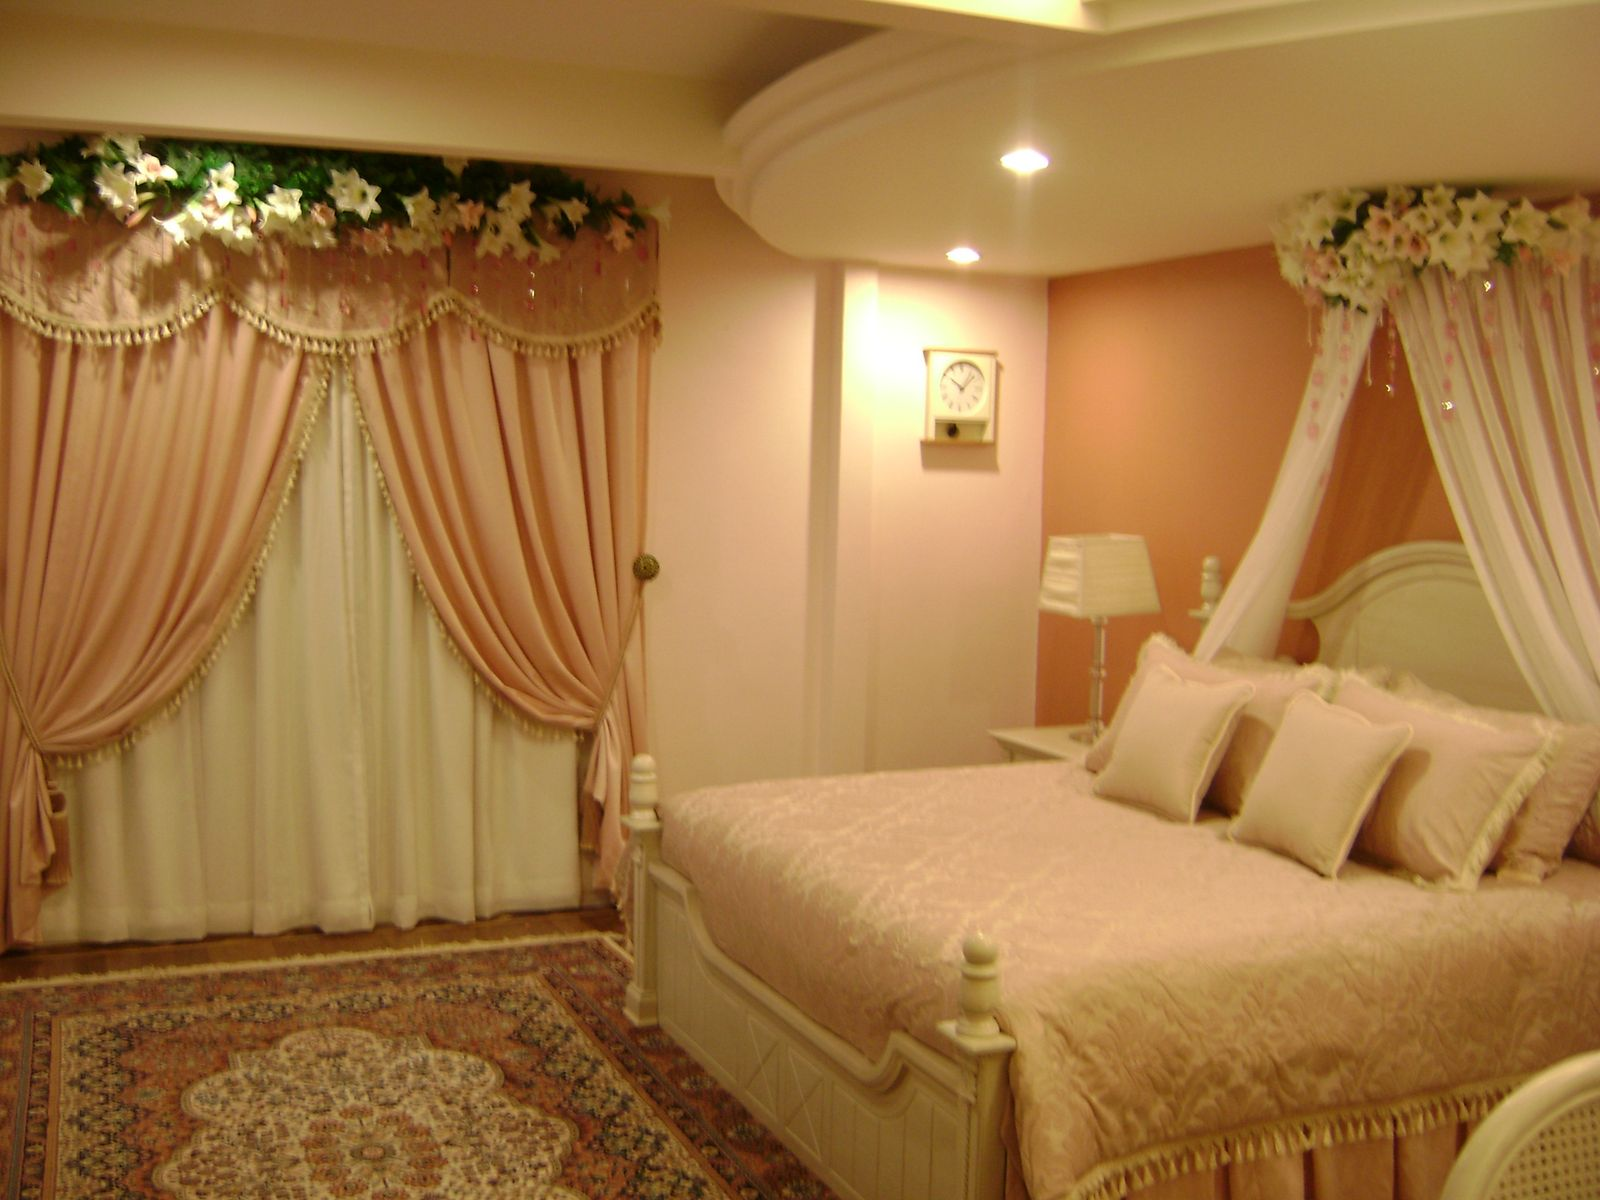 Girlsvilla wedding room decoration - Rm decoration pic ...